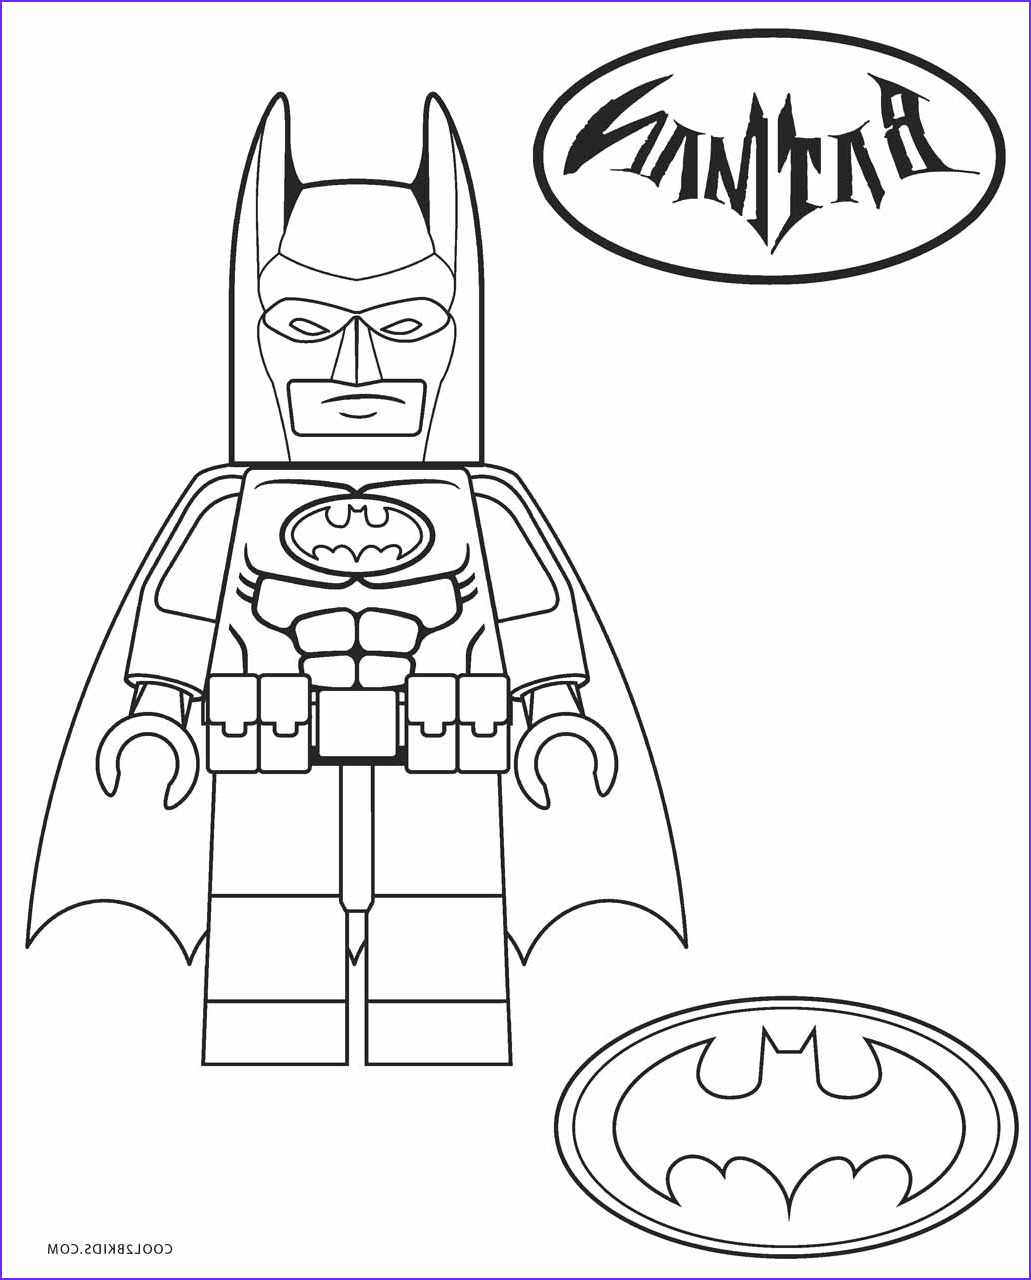 Lego Batman Coloring Elegant Photos Free Printable Lego Coloring Pages for Kids